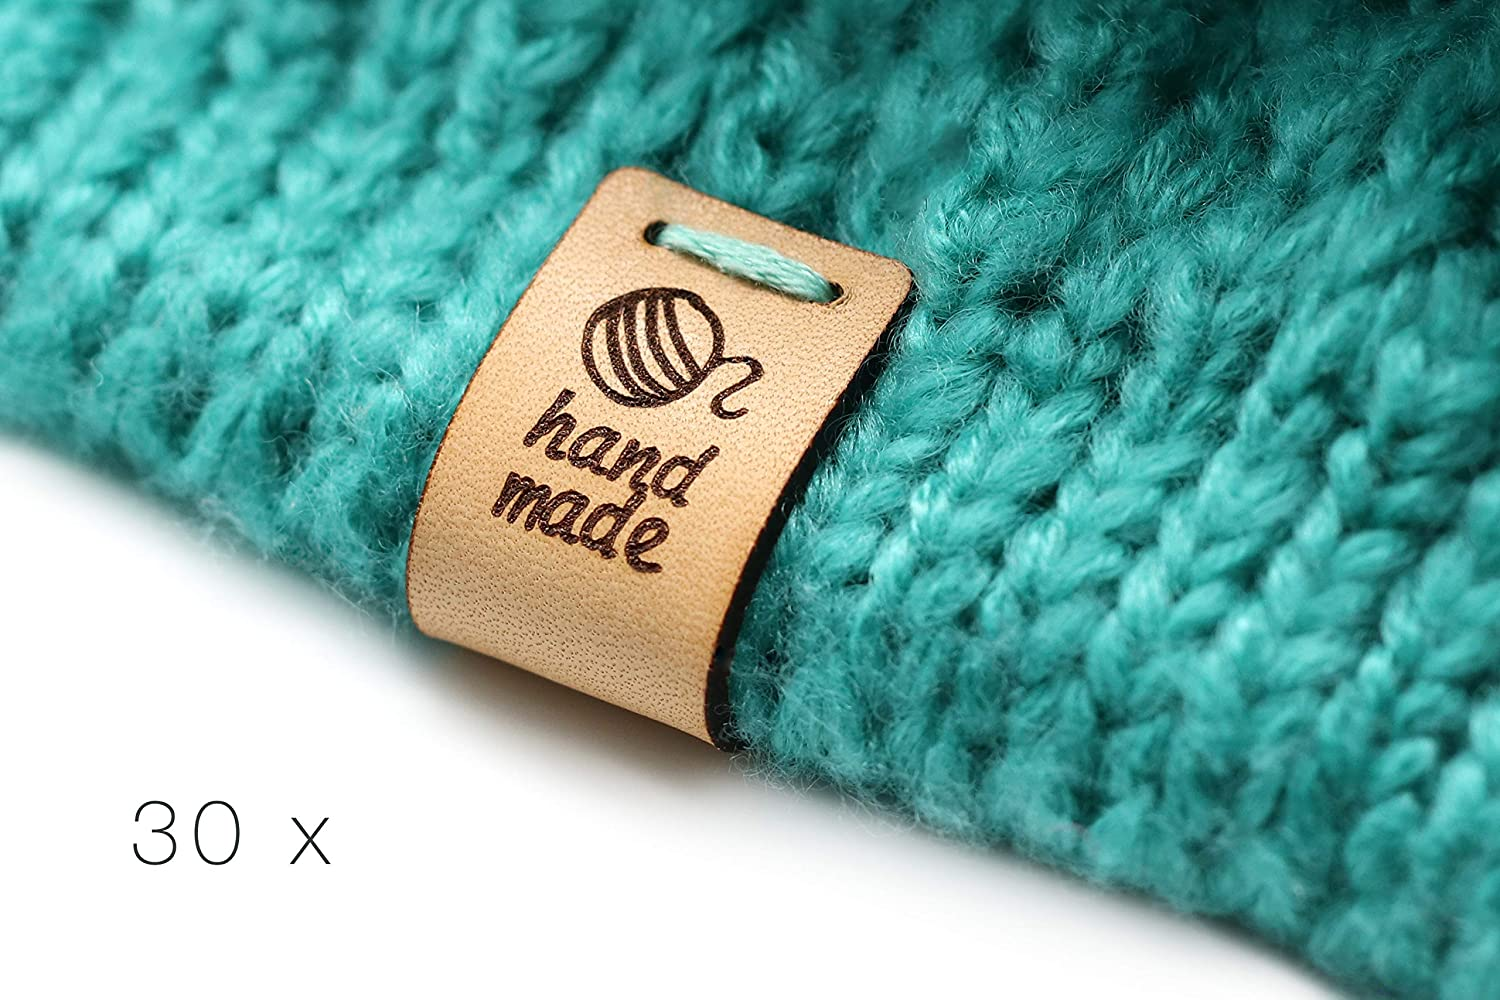 Exclusive Engraved Genuine Italian Leather Tags HMF Customized Text - 15 Pieces Folding Handmade Leather Labels Hand Made Ball of Wool mod